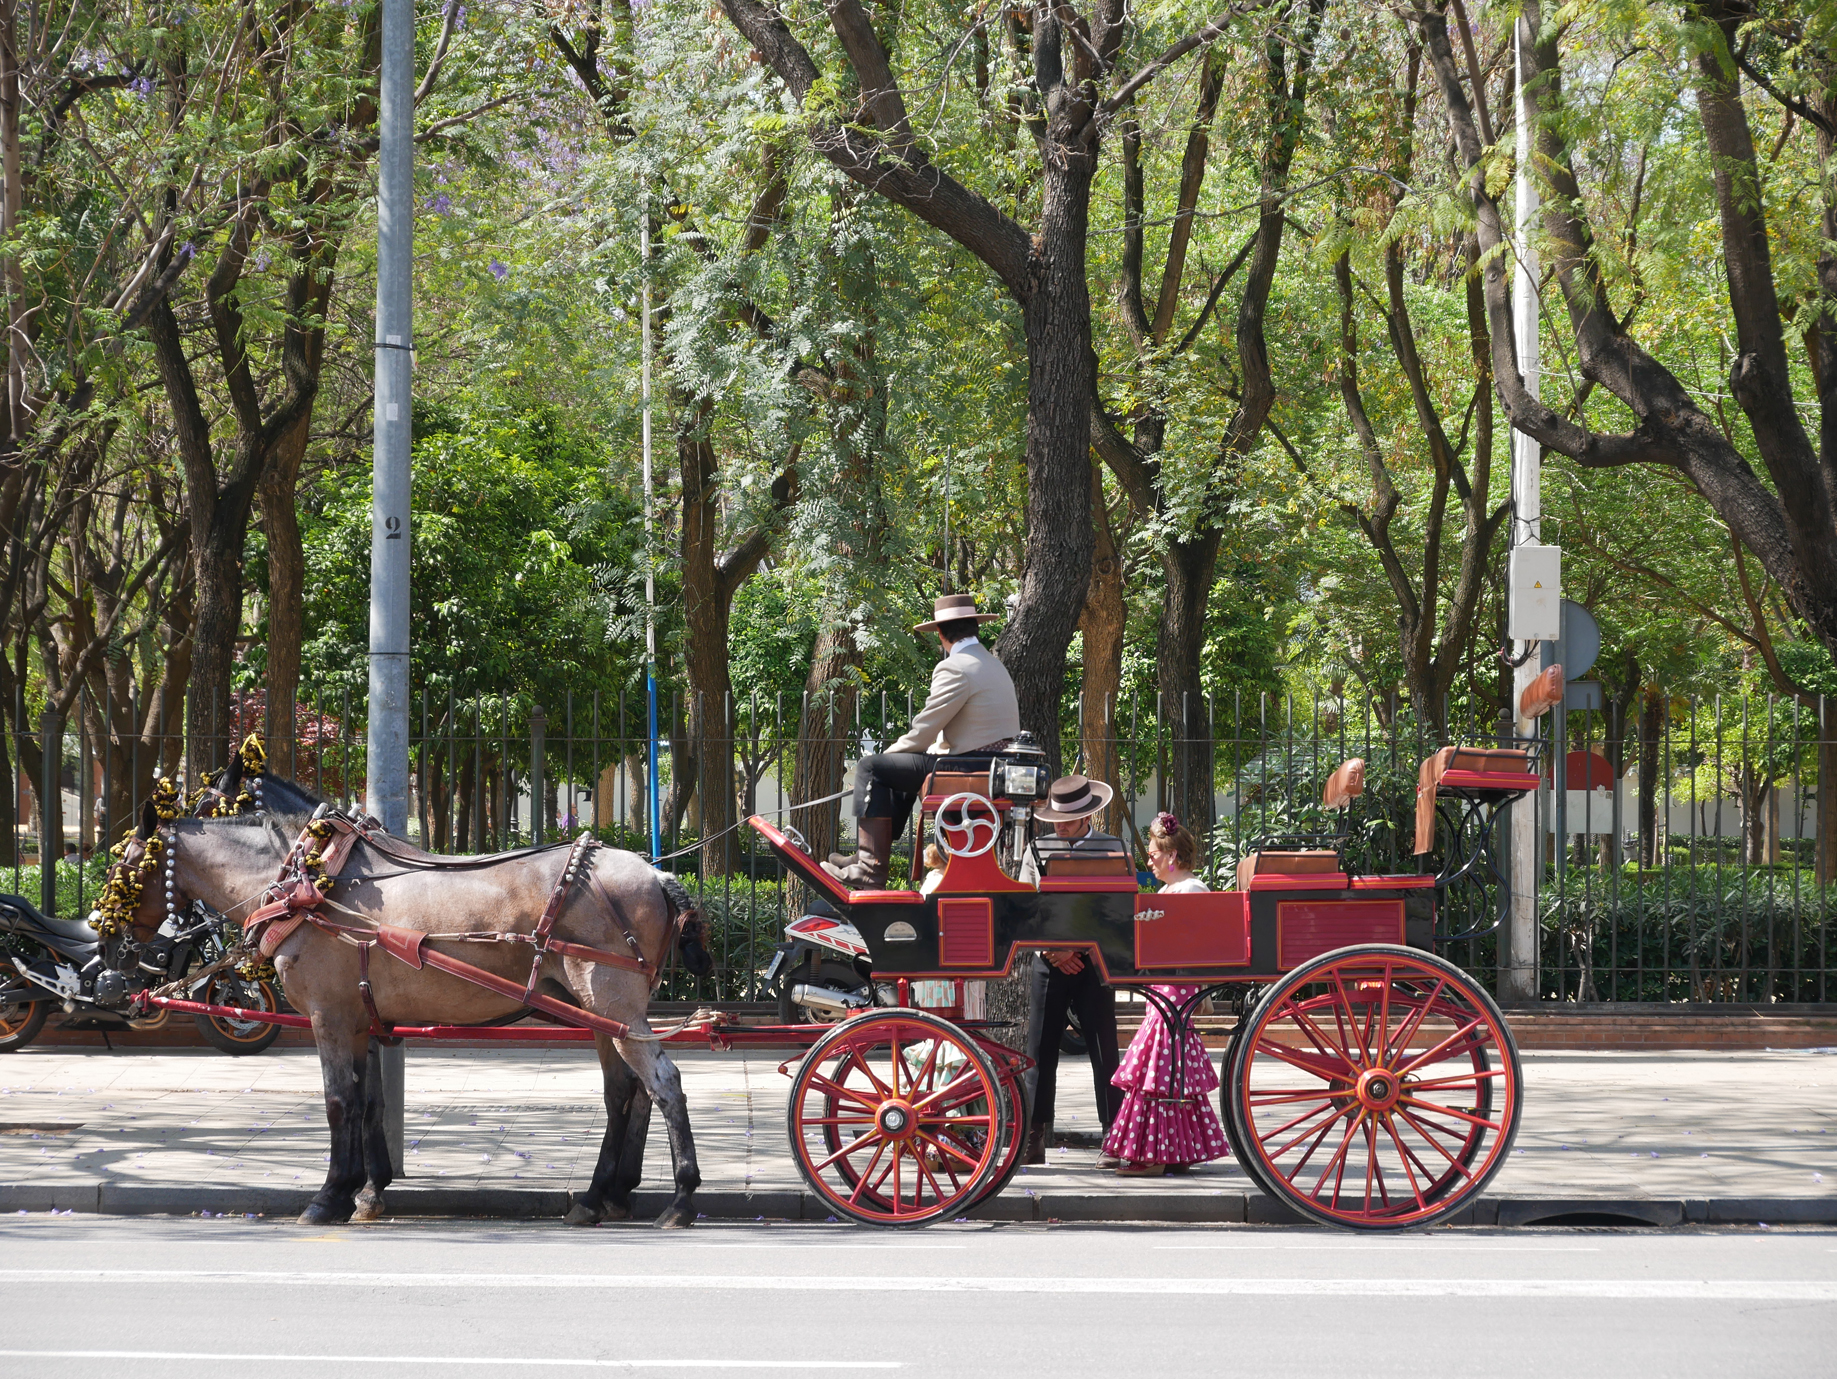 The horse-drawn carriages and traditional dress of the Feria can be found well outside of the fairgrounds.